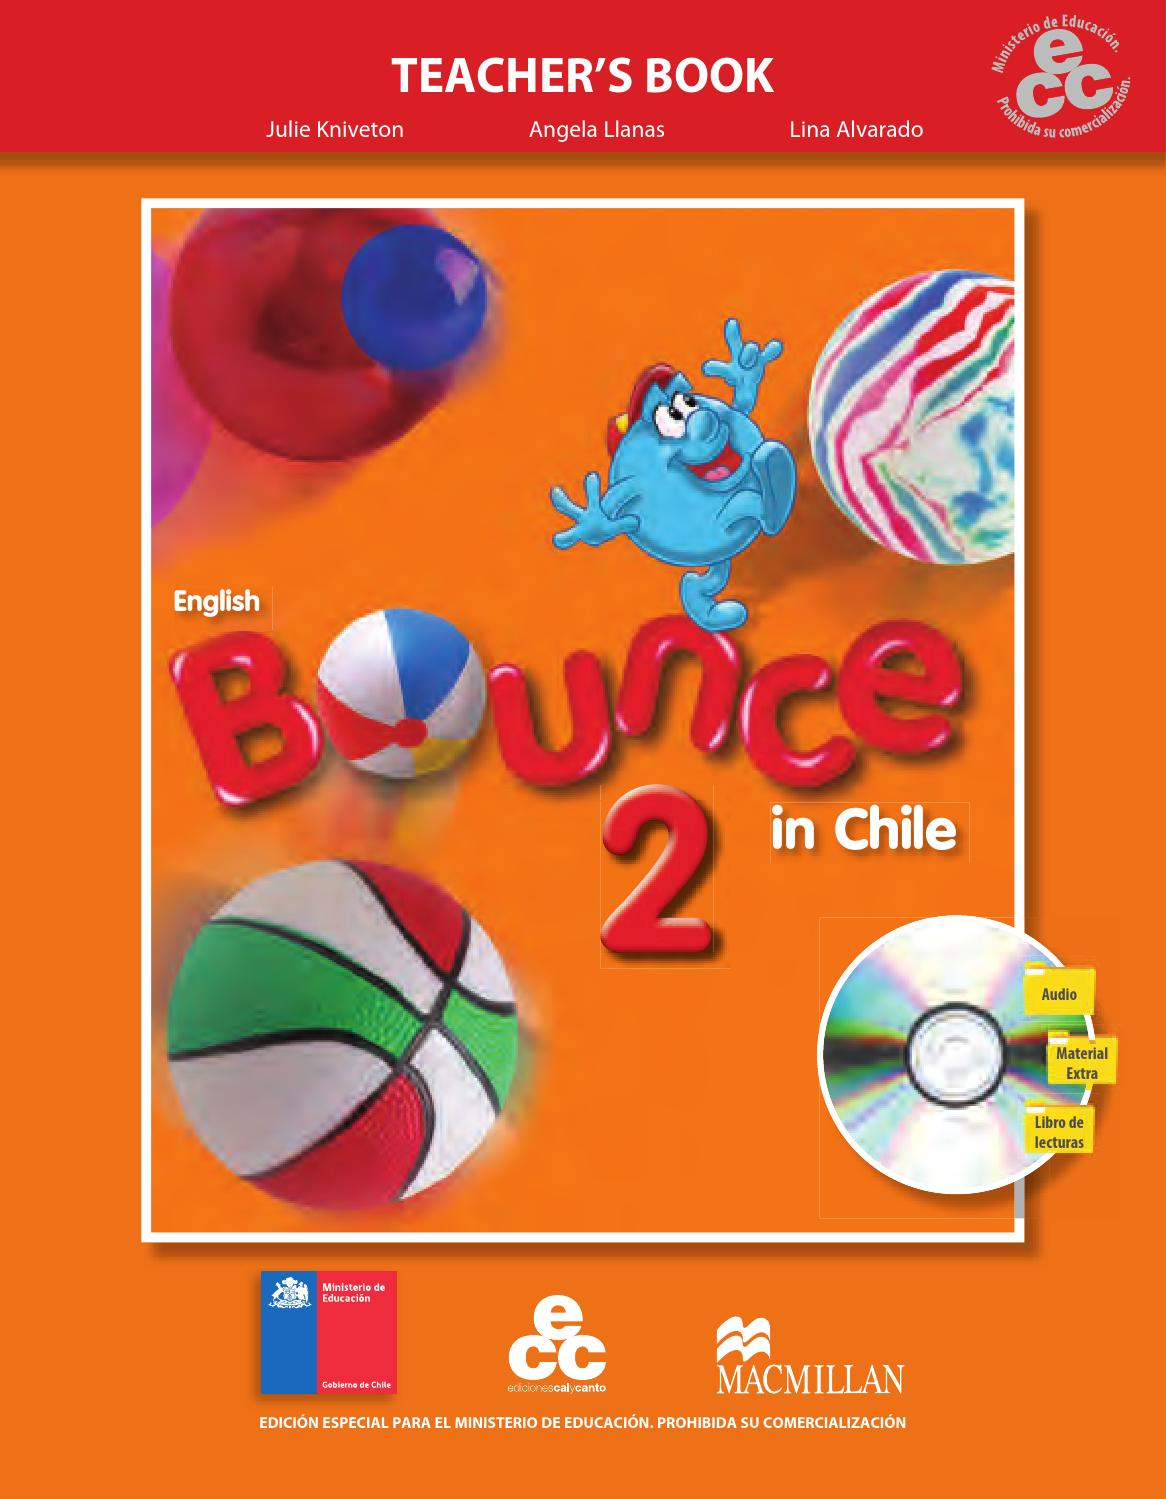 Libros Para Ingles Basico Bounce 2 In Chile Teacher 39s Book By Kdaniels24 Issuu